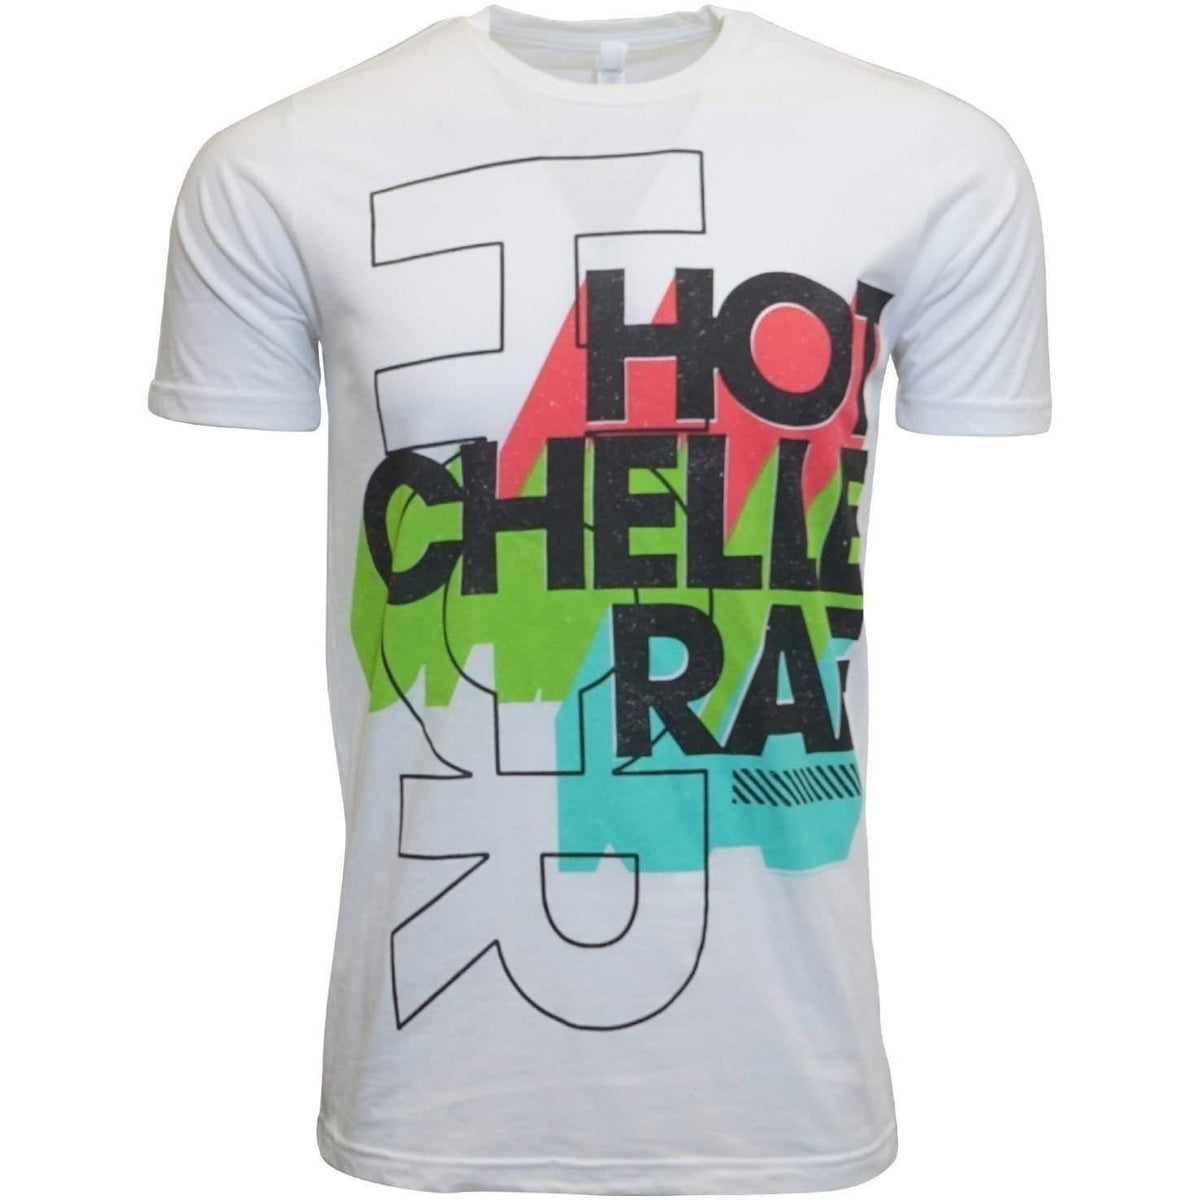 HOT CHELLE RAY T SHIRT - Salemonster